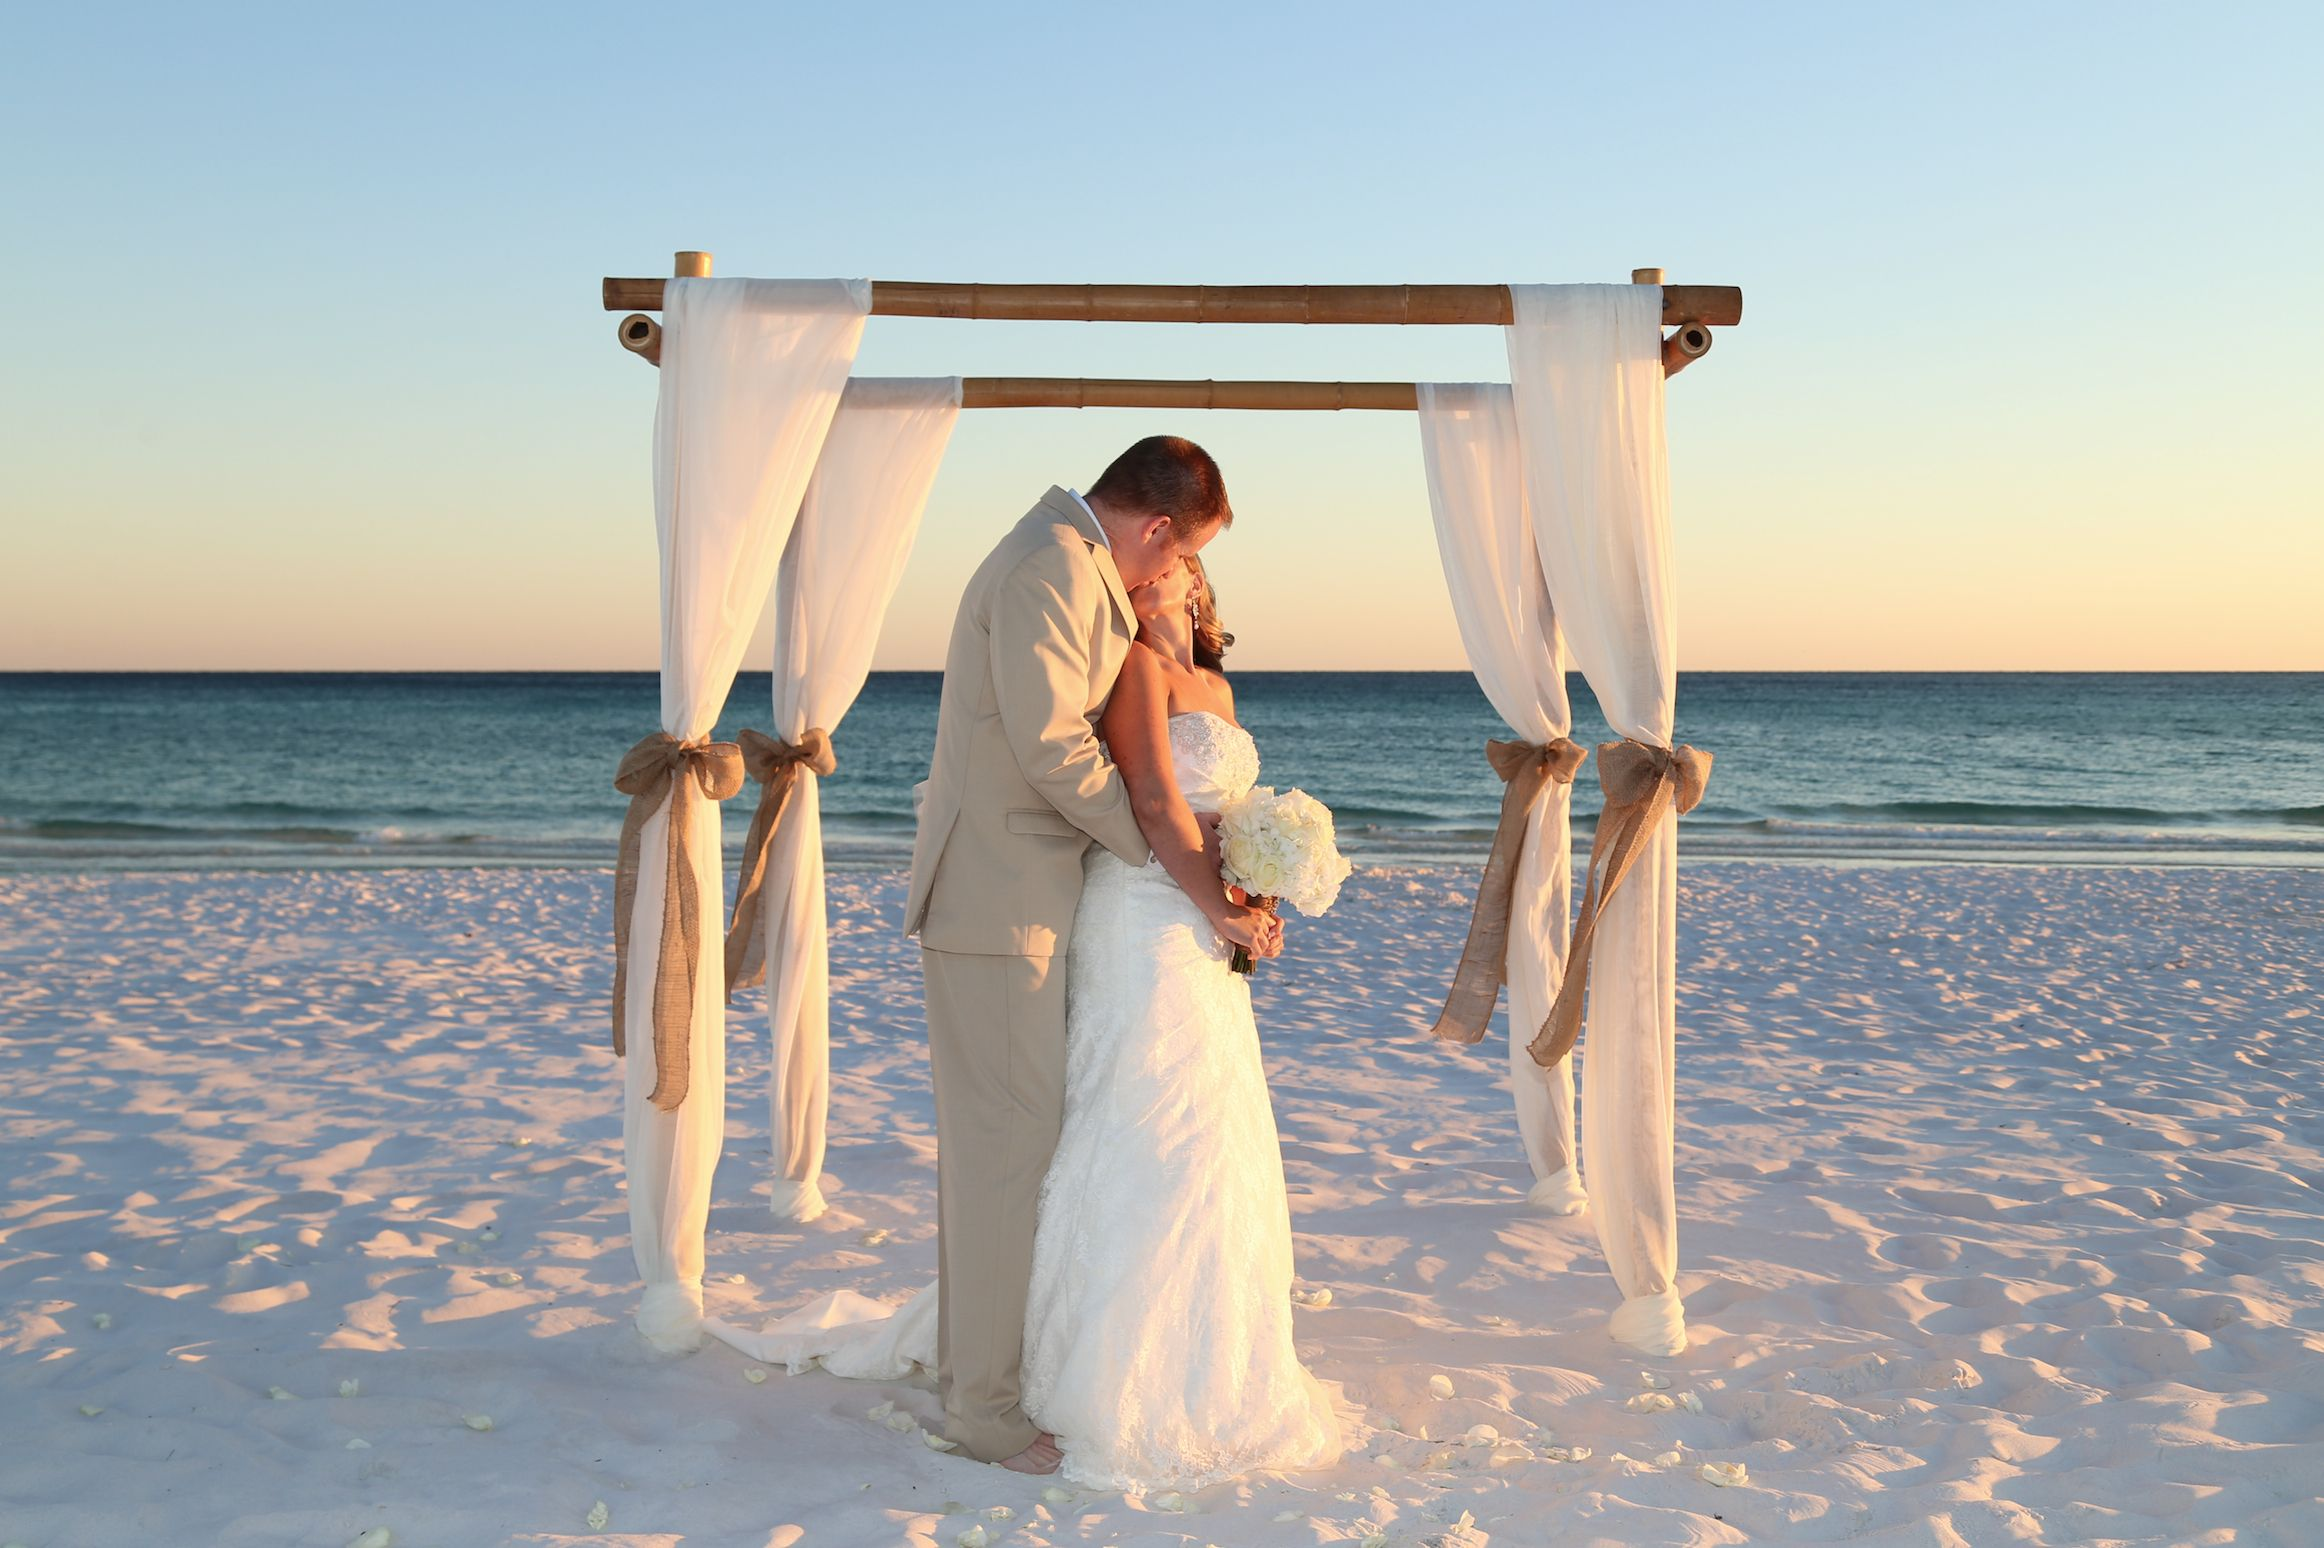 Bamboo Wedding Arbor Draped With Ivory Fabric And Burlap Ties Beach Decorations Get